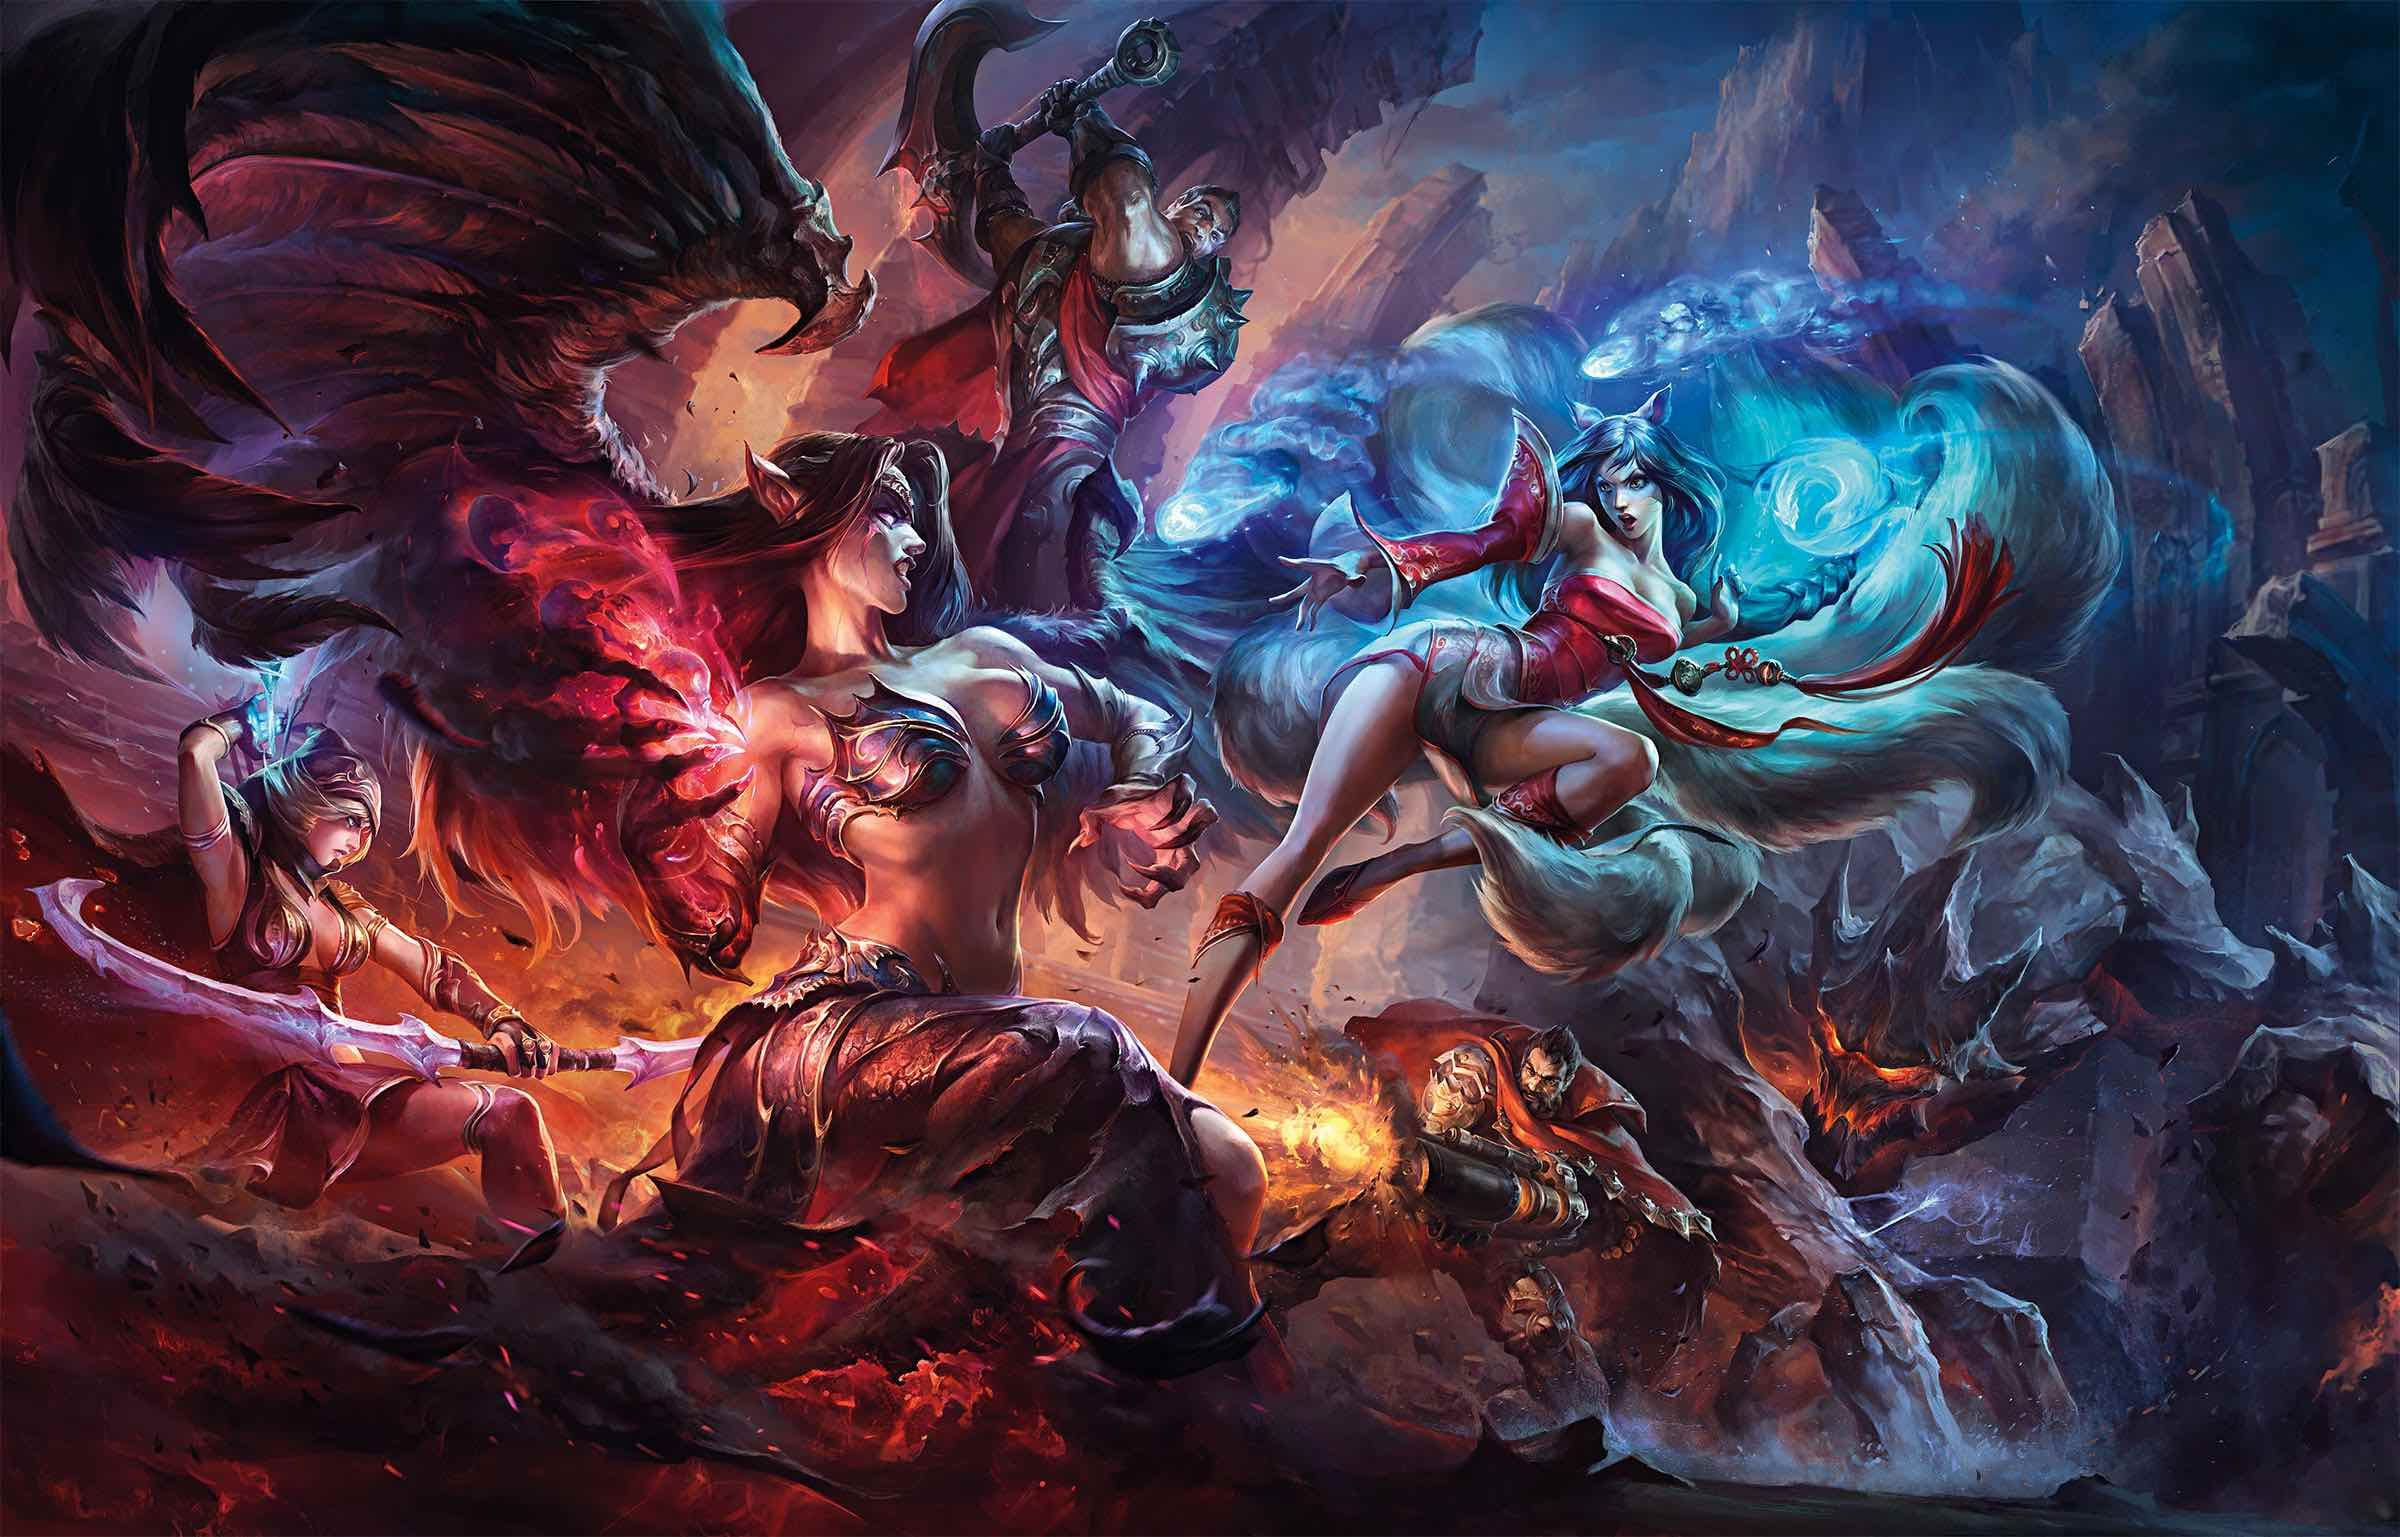 Enjoy The Art Of League Of Legends In A Collection Of 90 Official Concept Art League Of Legends Game League Of Legends Legend Games